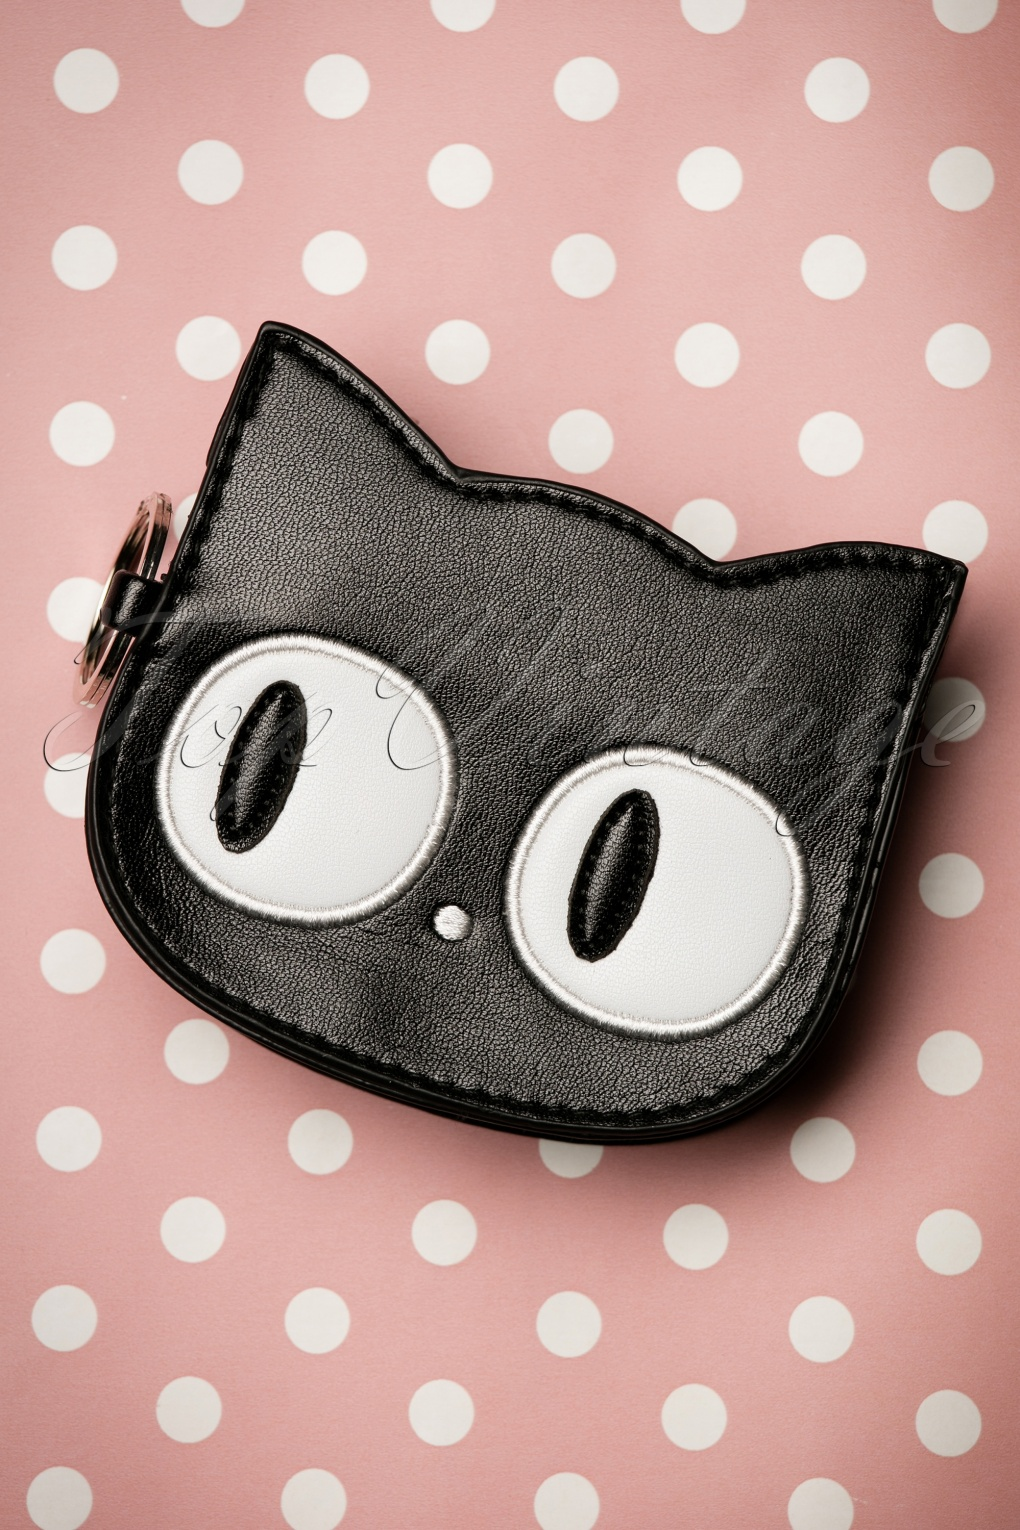 Retro Handbags, Purses, Wallets, Bags 60s Lizzy The Big Eyed Cat Small Wallet in Black £7.60 AT vintagedancer.com